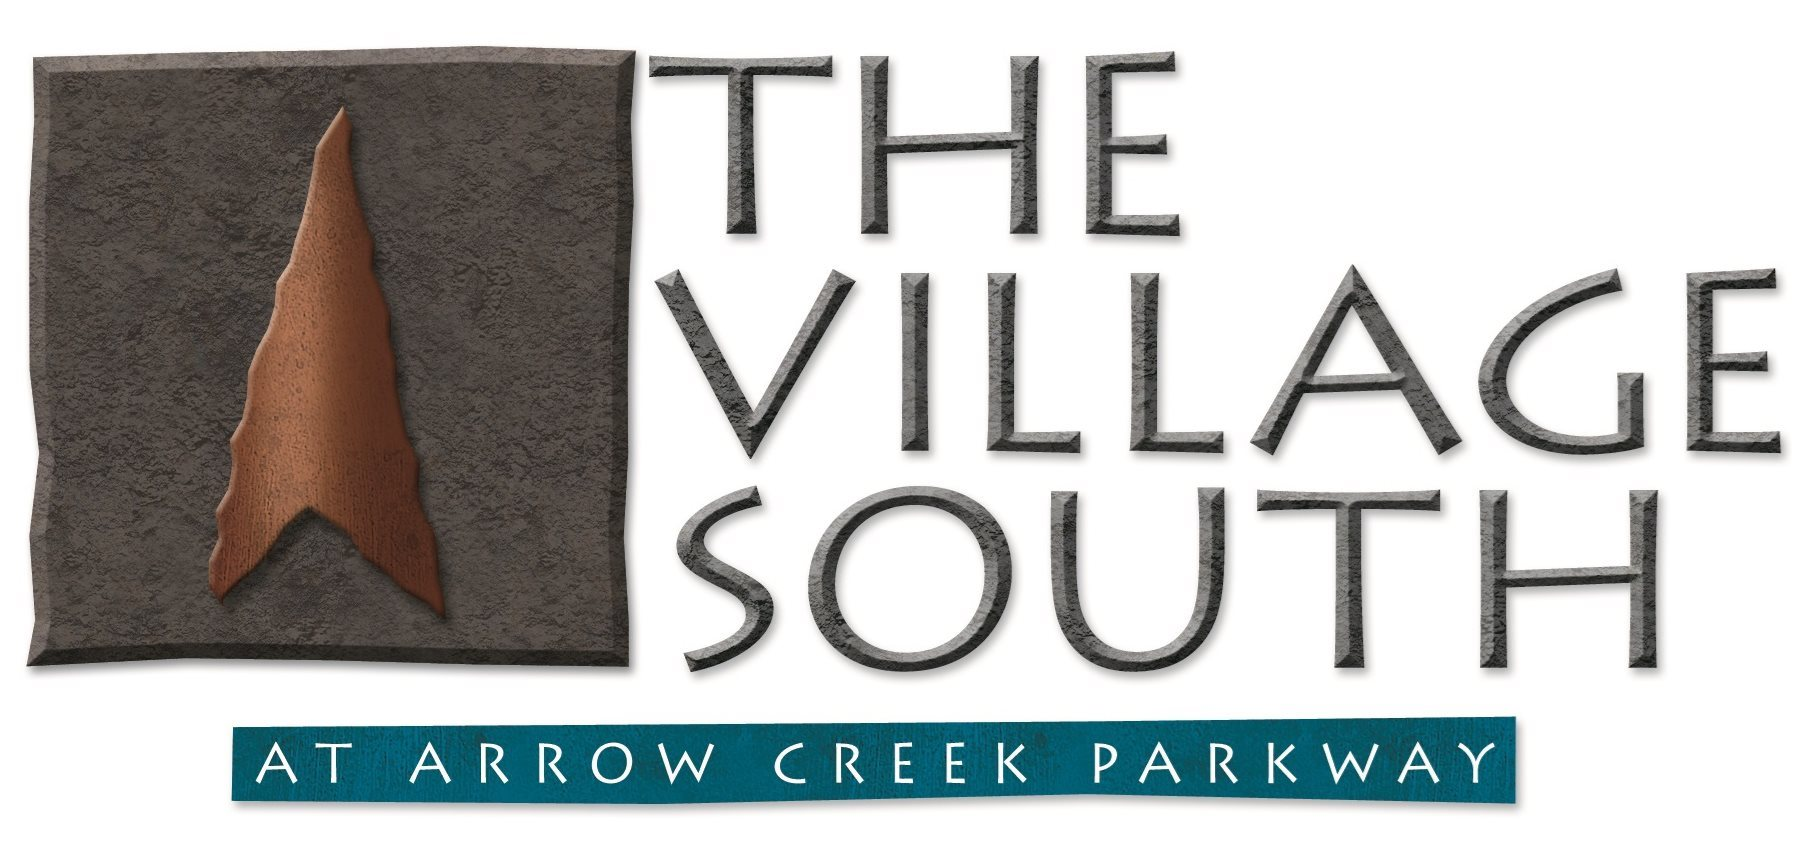 The Village South At Arrow Creek Parkway